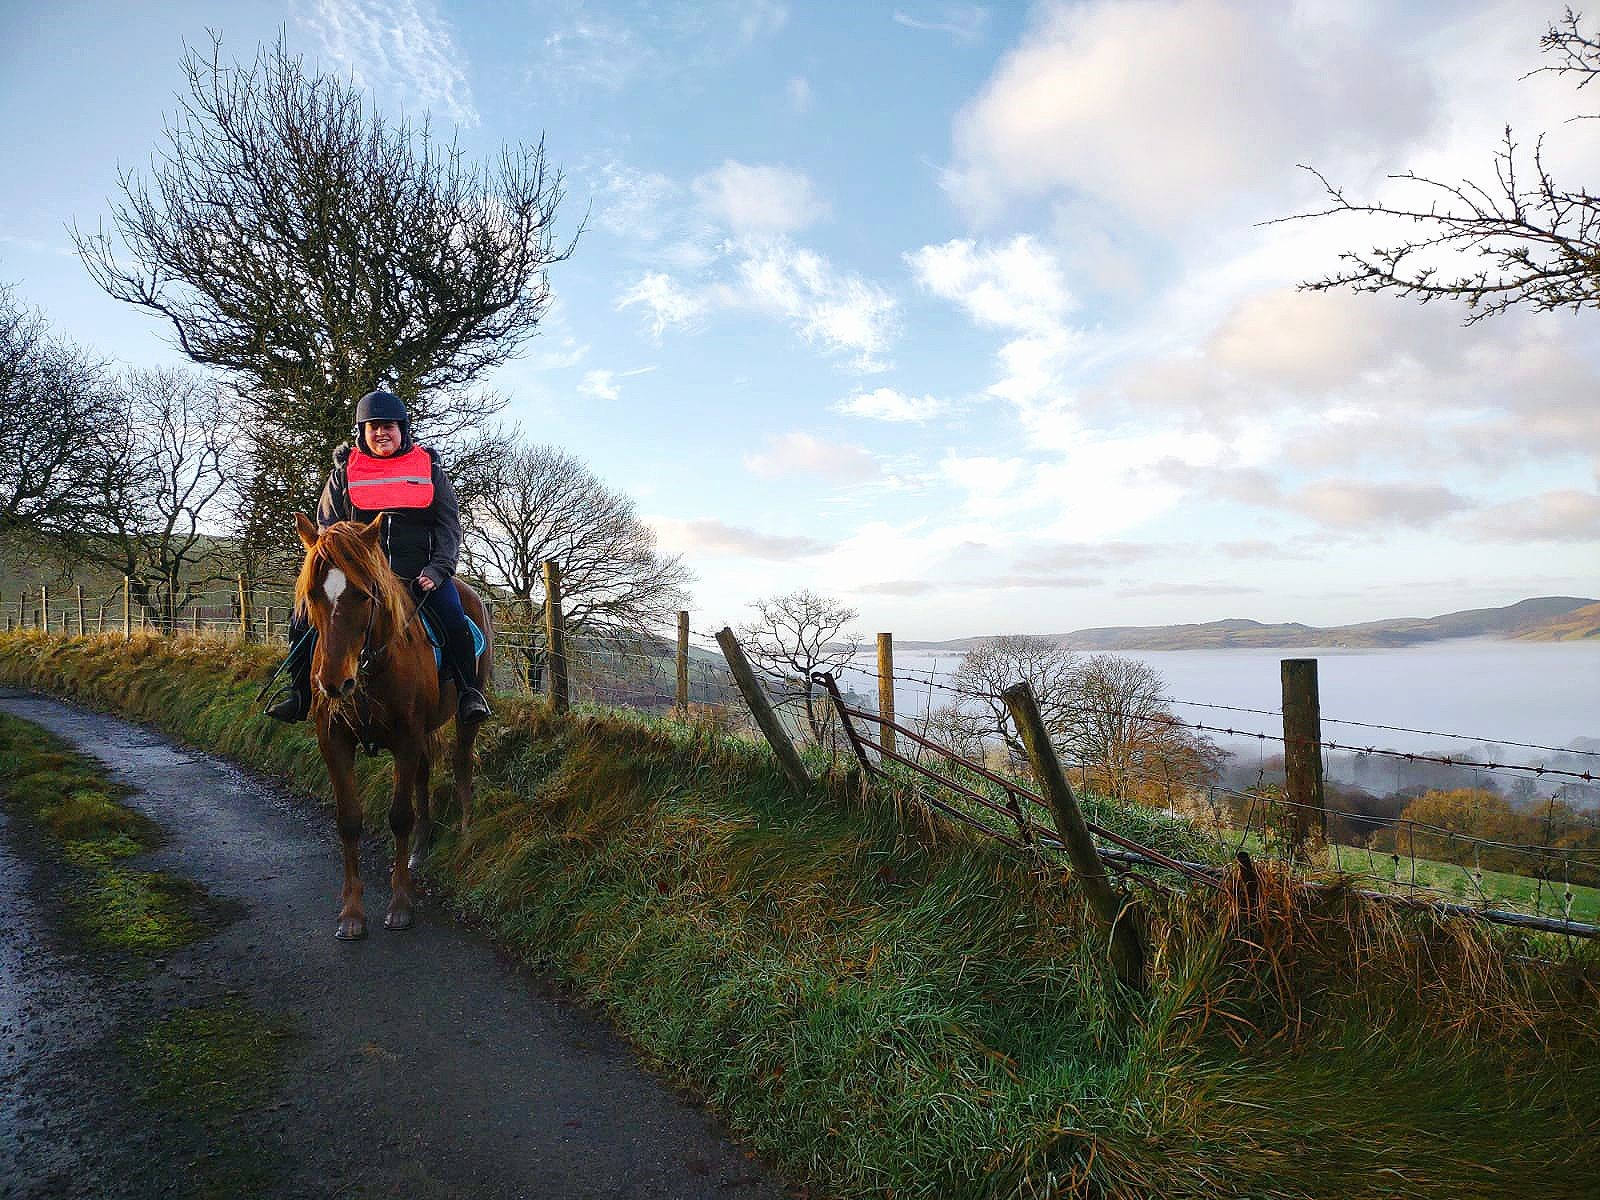 A girls wearing pink hi-viz is riding a chestnut horse with a view over the welsh mountains